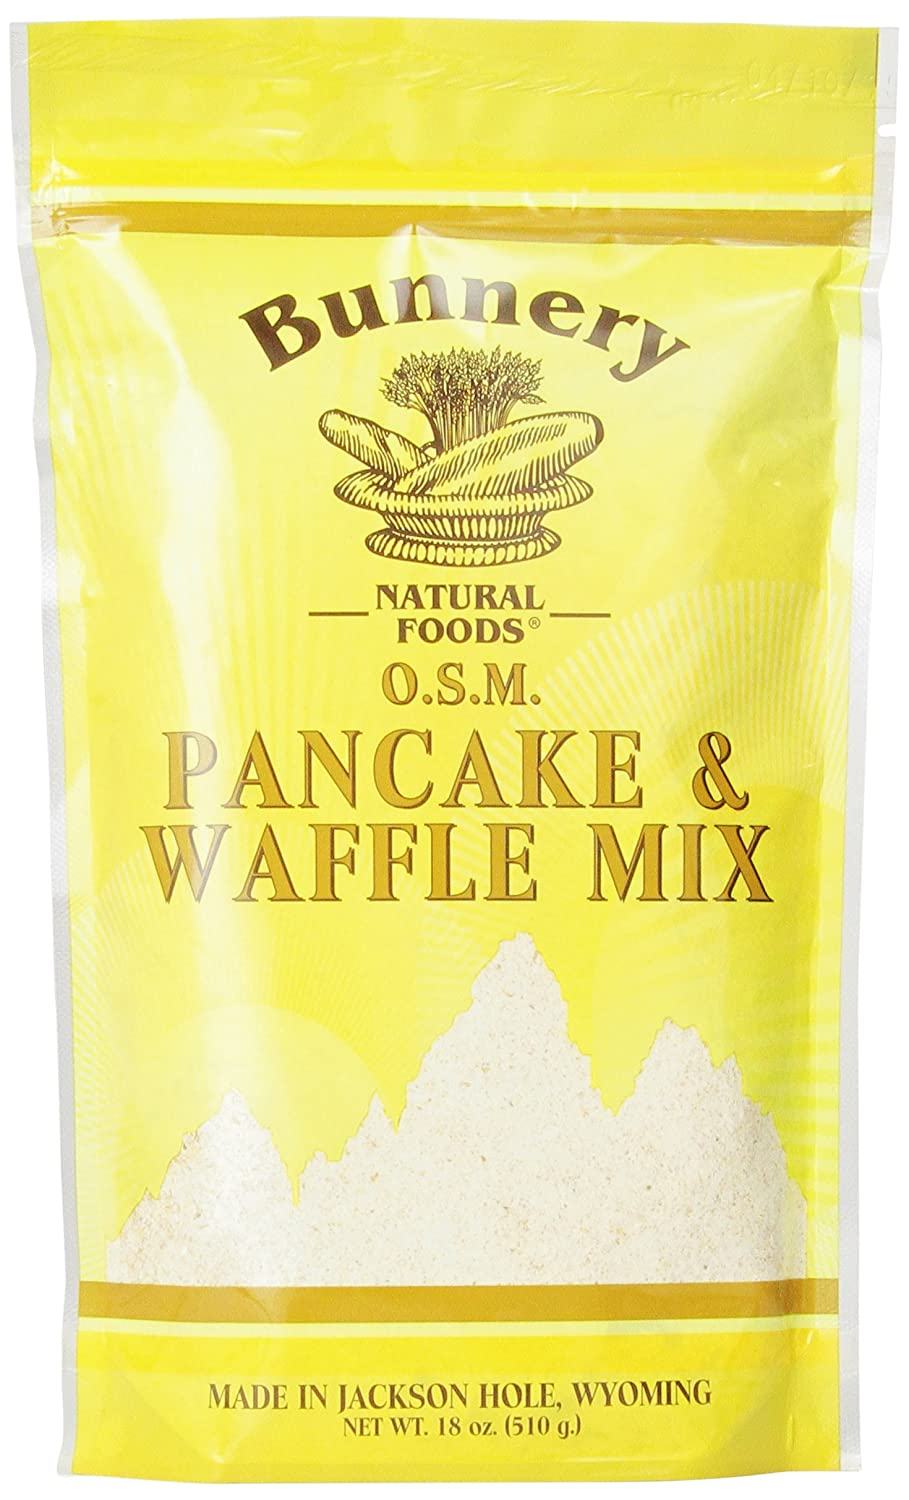 Bunnery Natural Foods Pancake and Waffle Mix, Whole Grain, 18-Ounce Bag